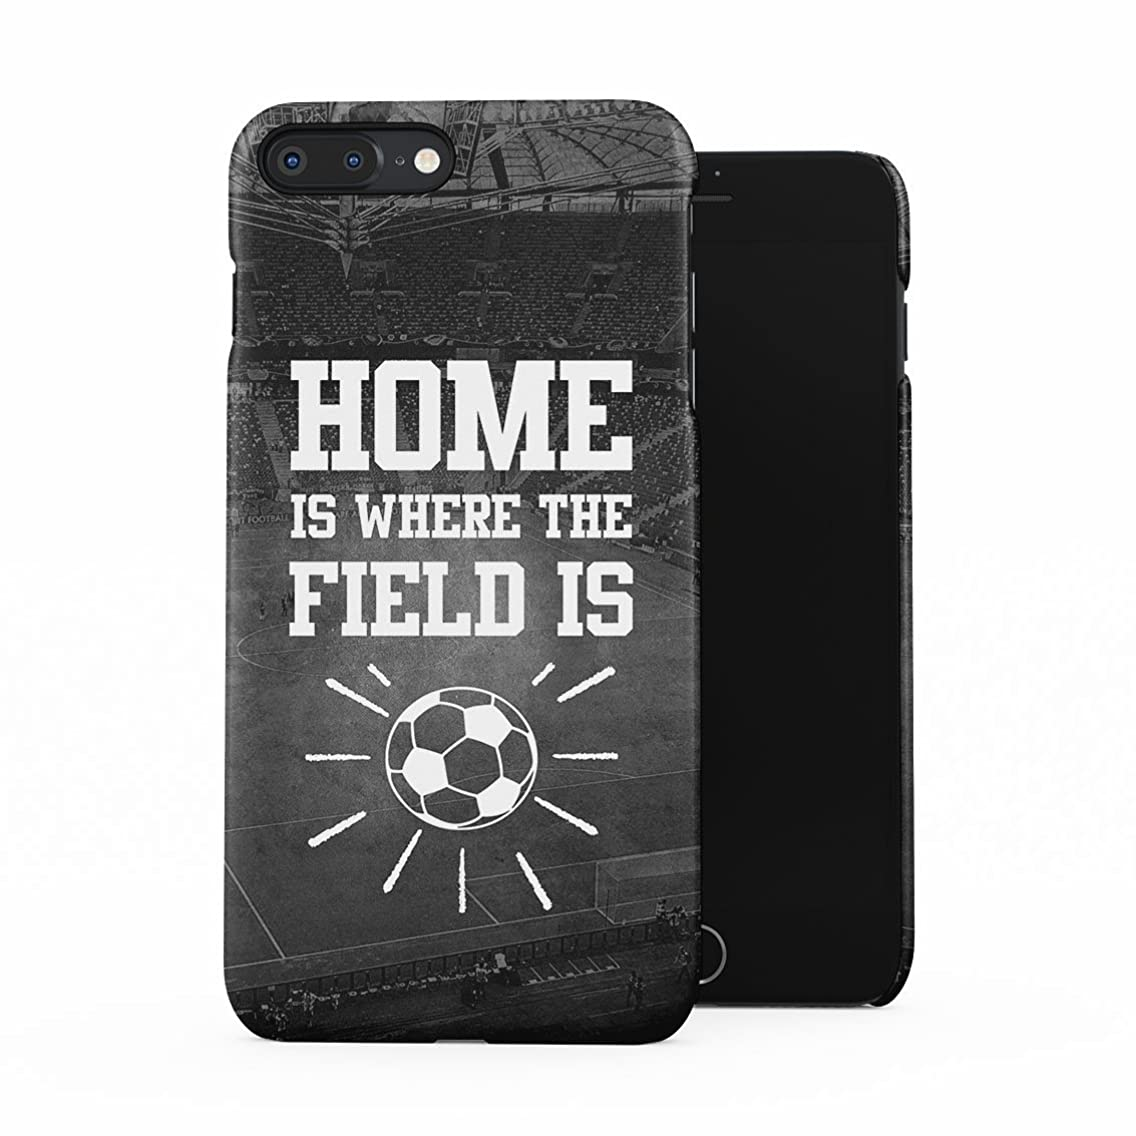 Soccer Football Field Stadium Home is Where The Field is Motivation Quote Plastic Phone Snap On Back Case Cover Shell for iPhone 7 Plus & iPhone 8 Plus